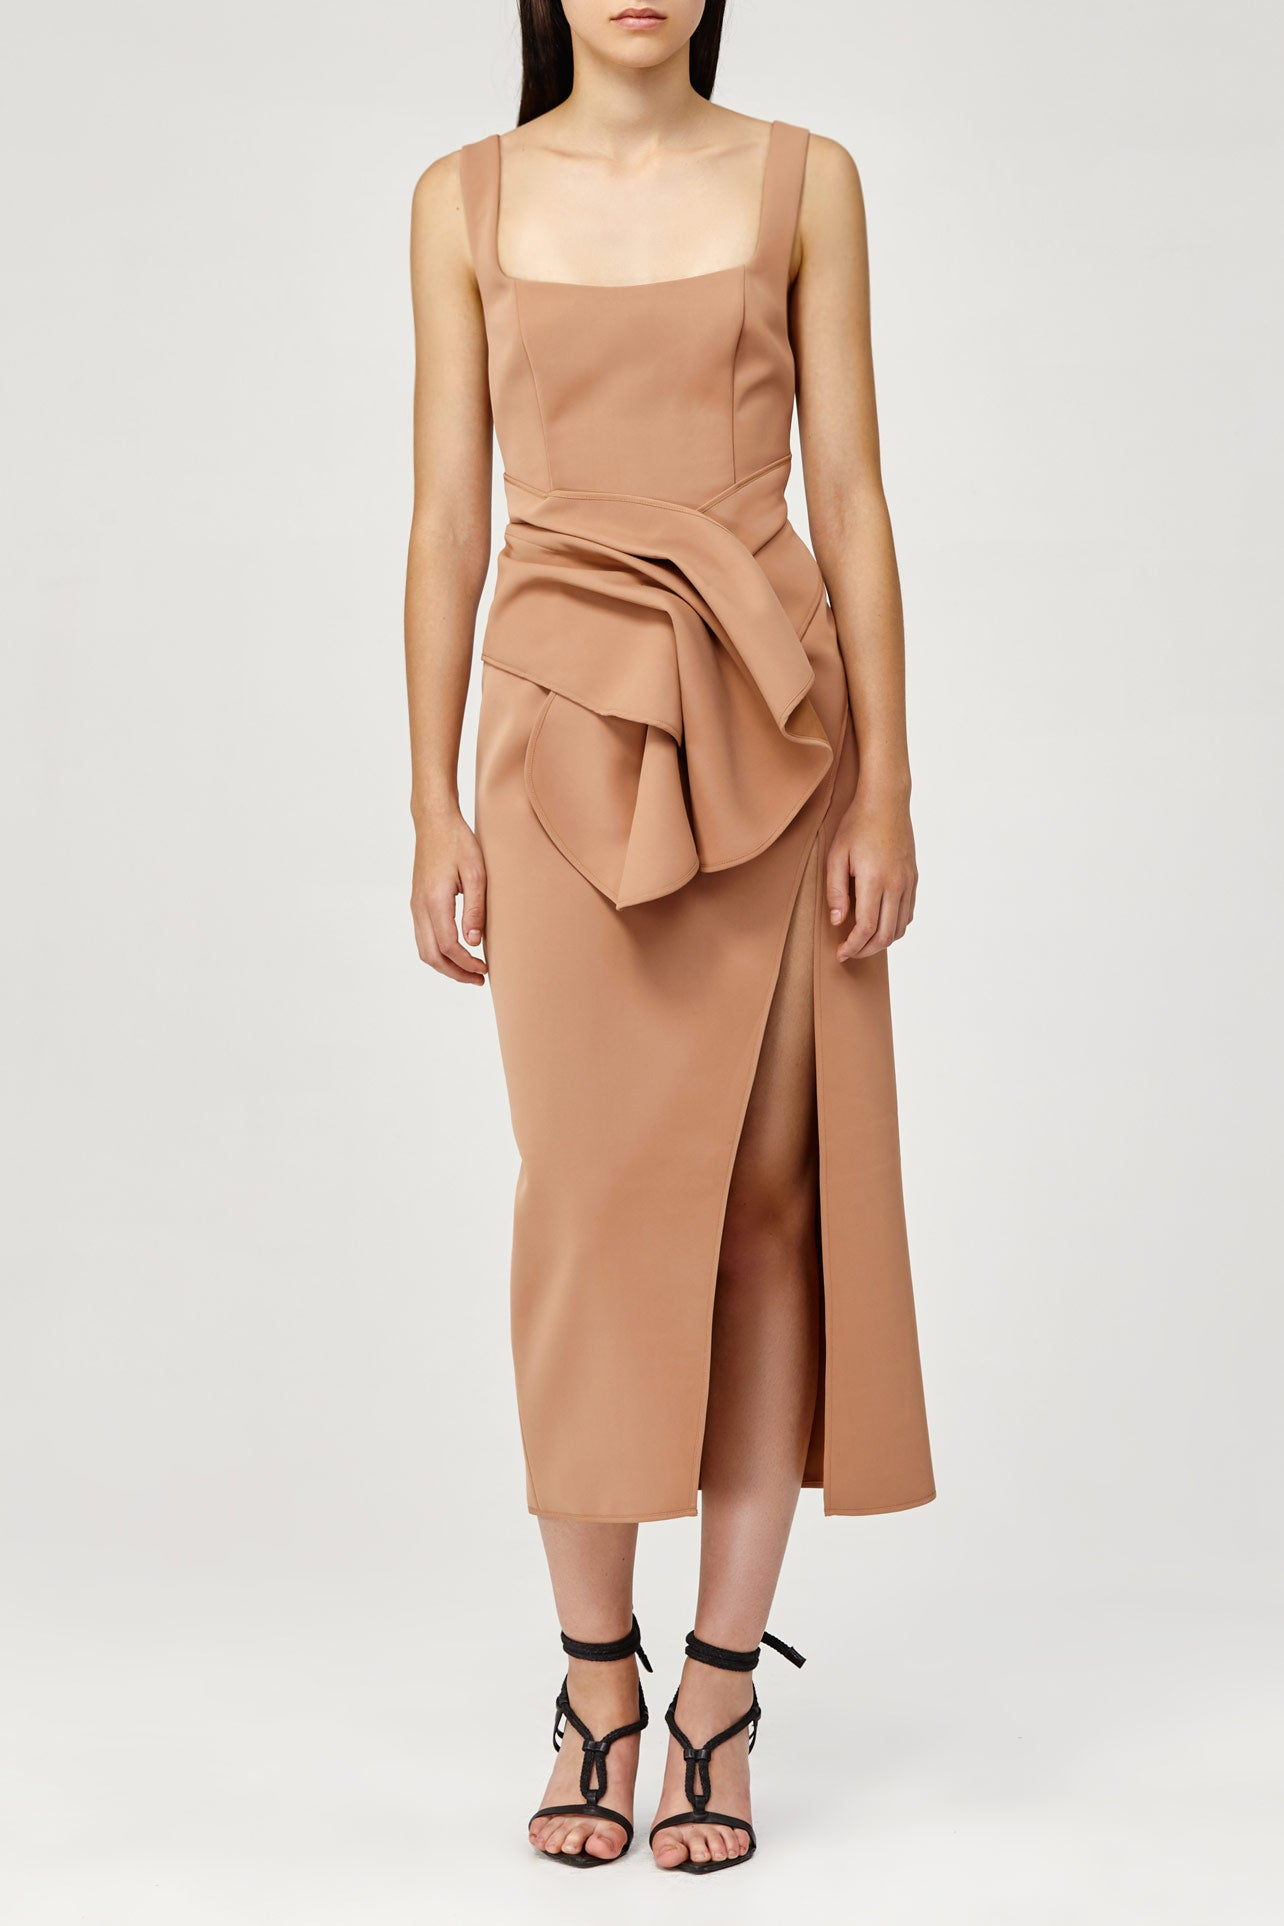 Acler Ladies Habana Dress in Tan with Drape Detail